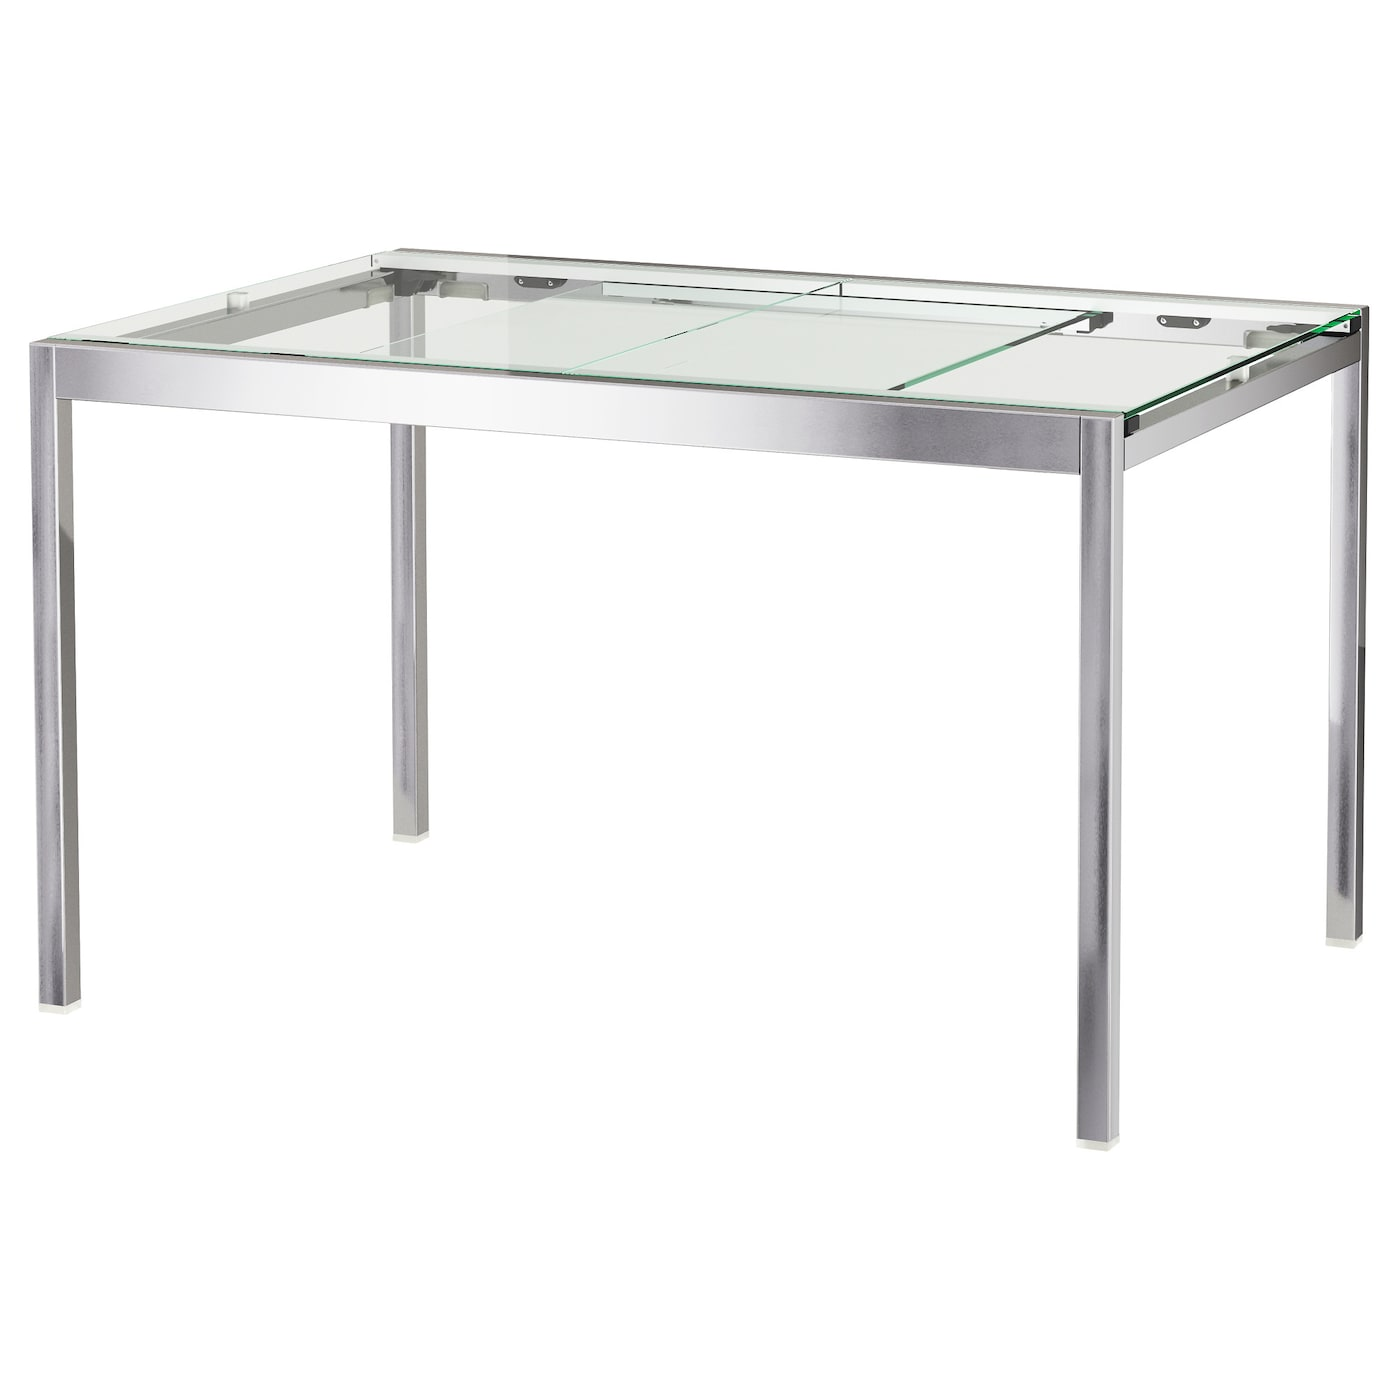 GLIVARP Extendable table Transparent chrome plated 125 188x85 cm